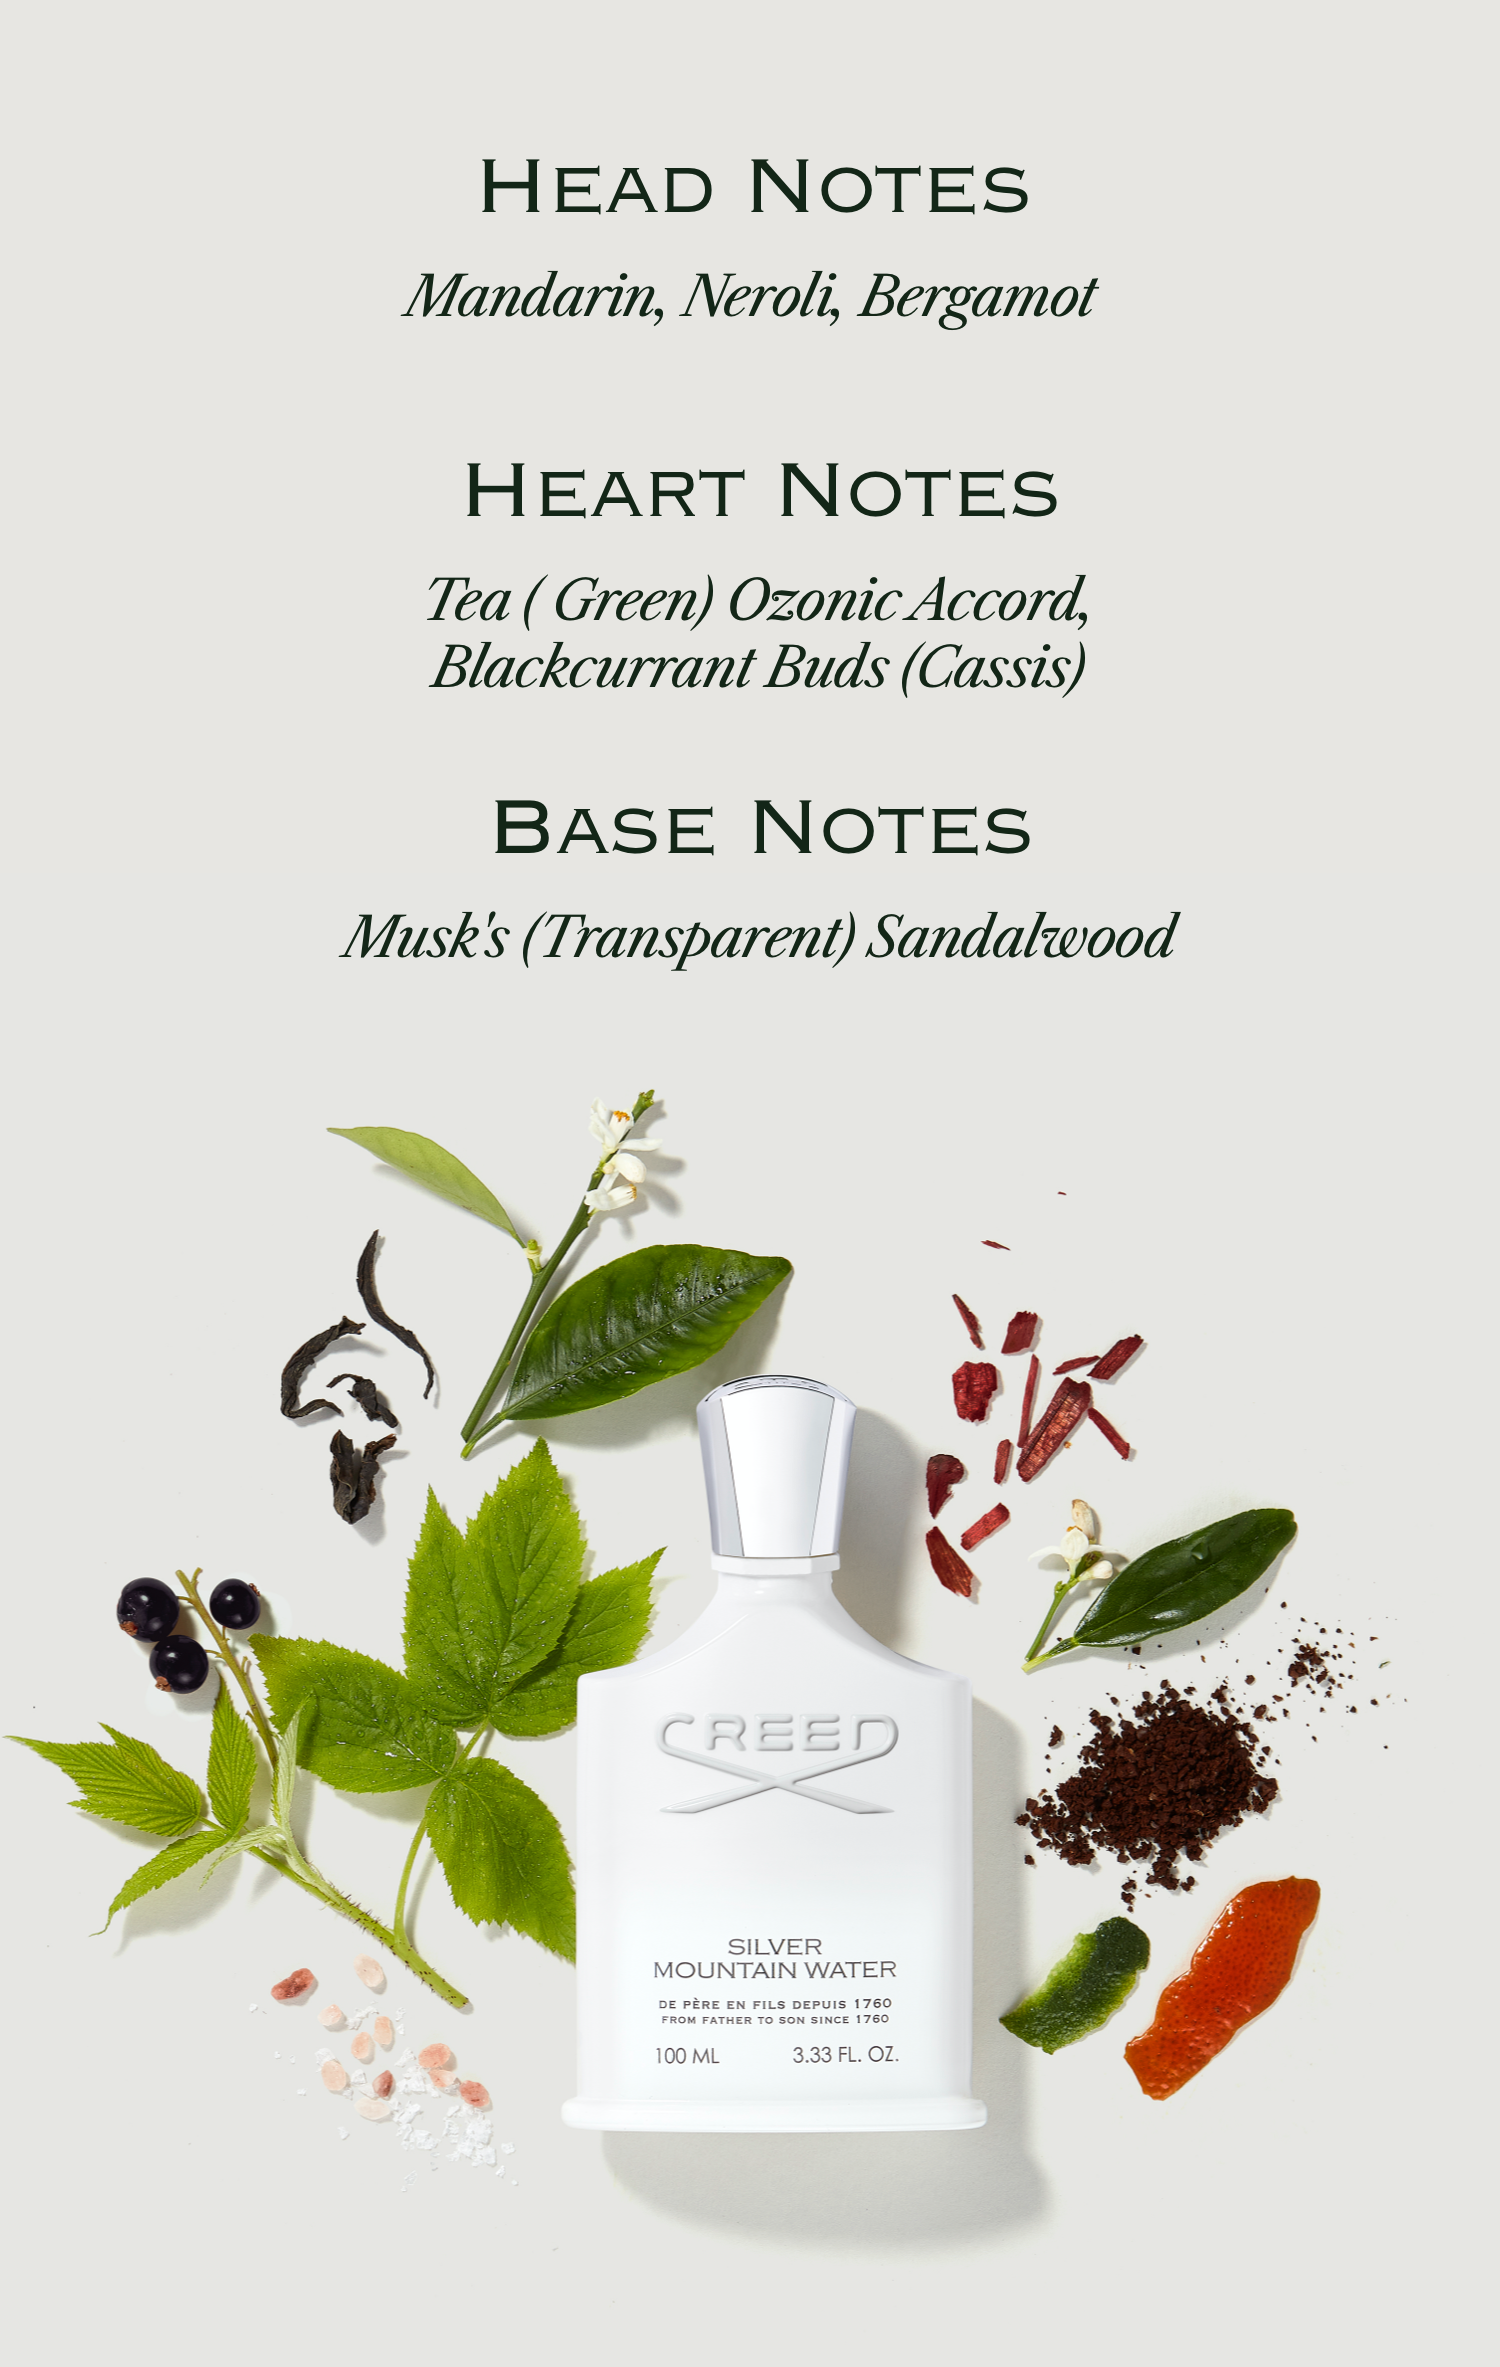 Silver Mountain Water Notes